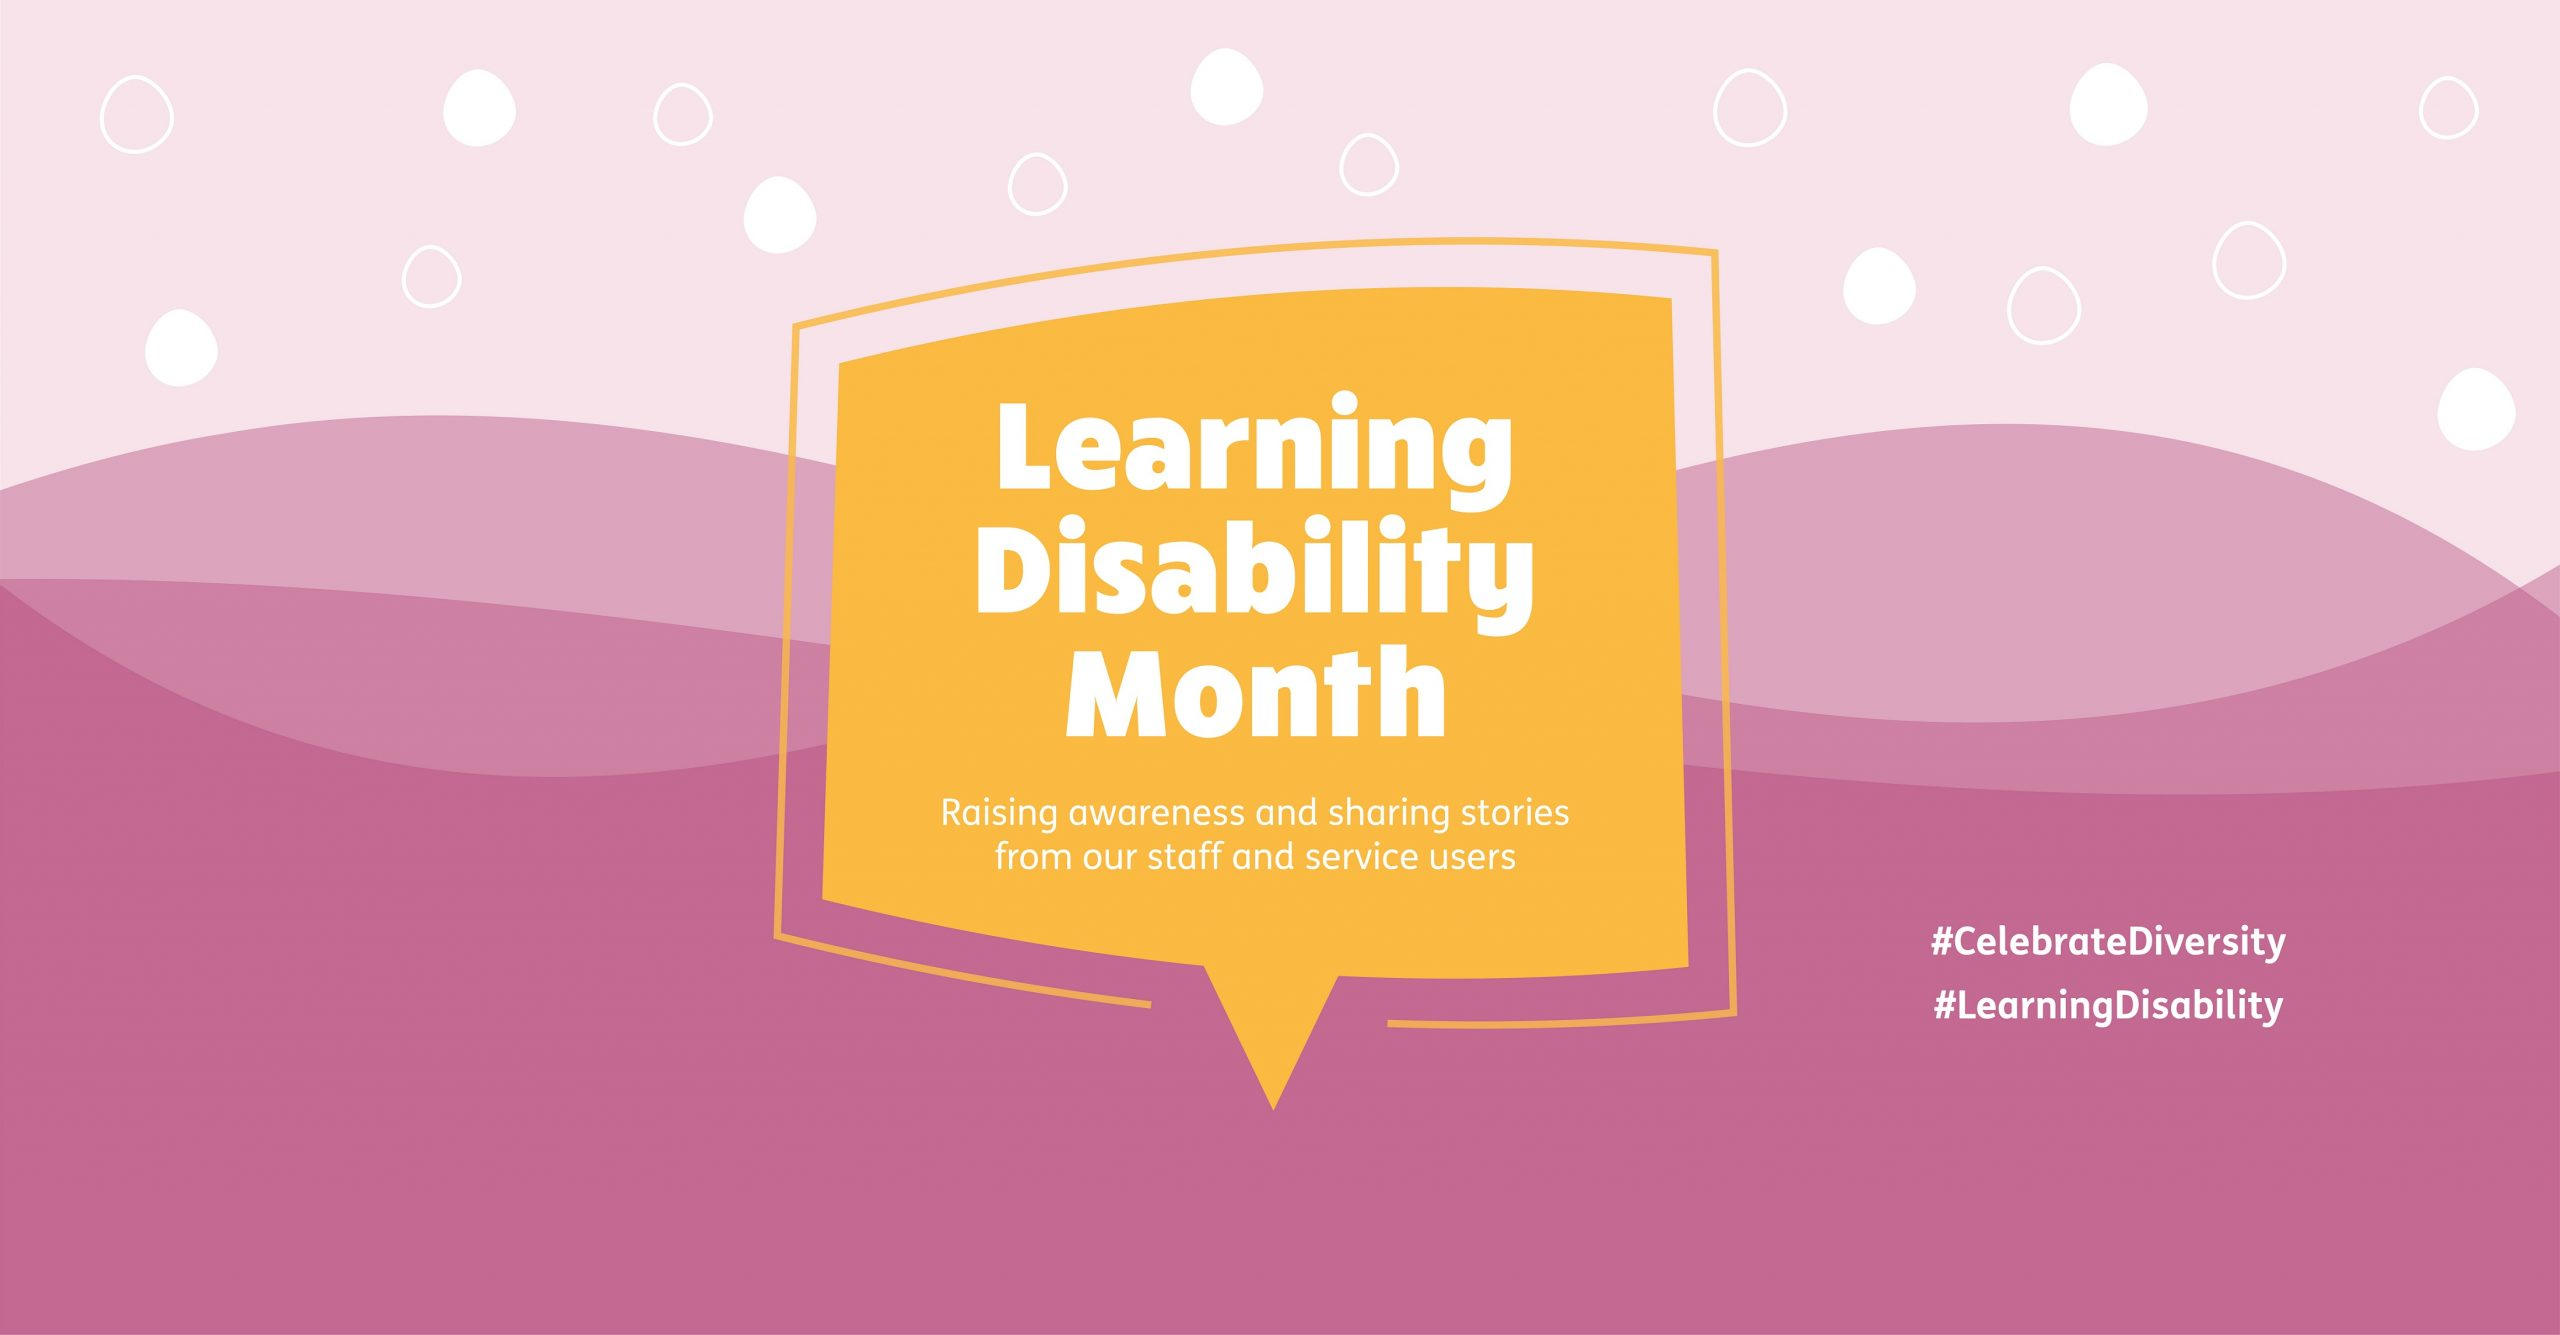 Introduction to Learning Disability Month